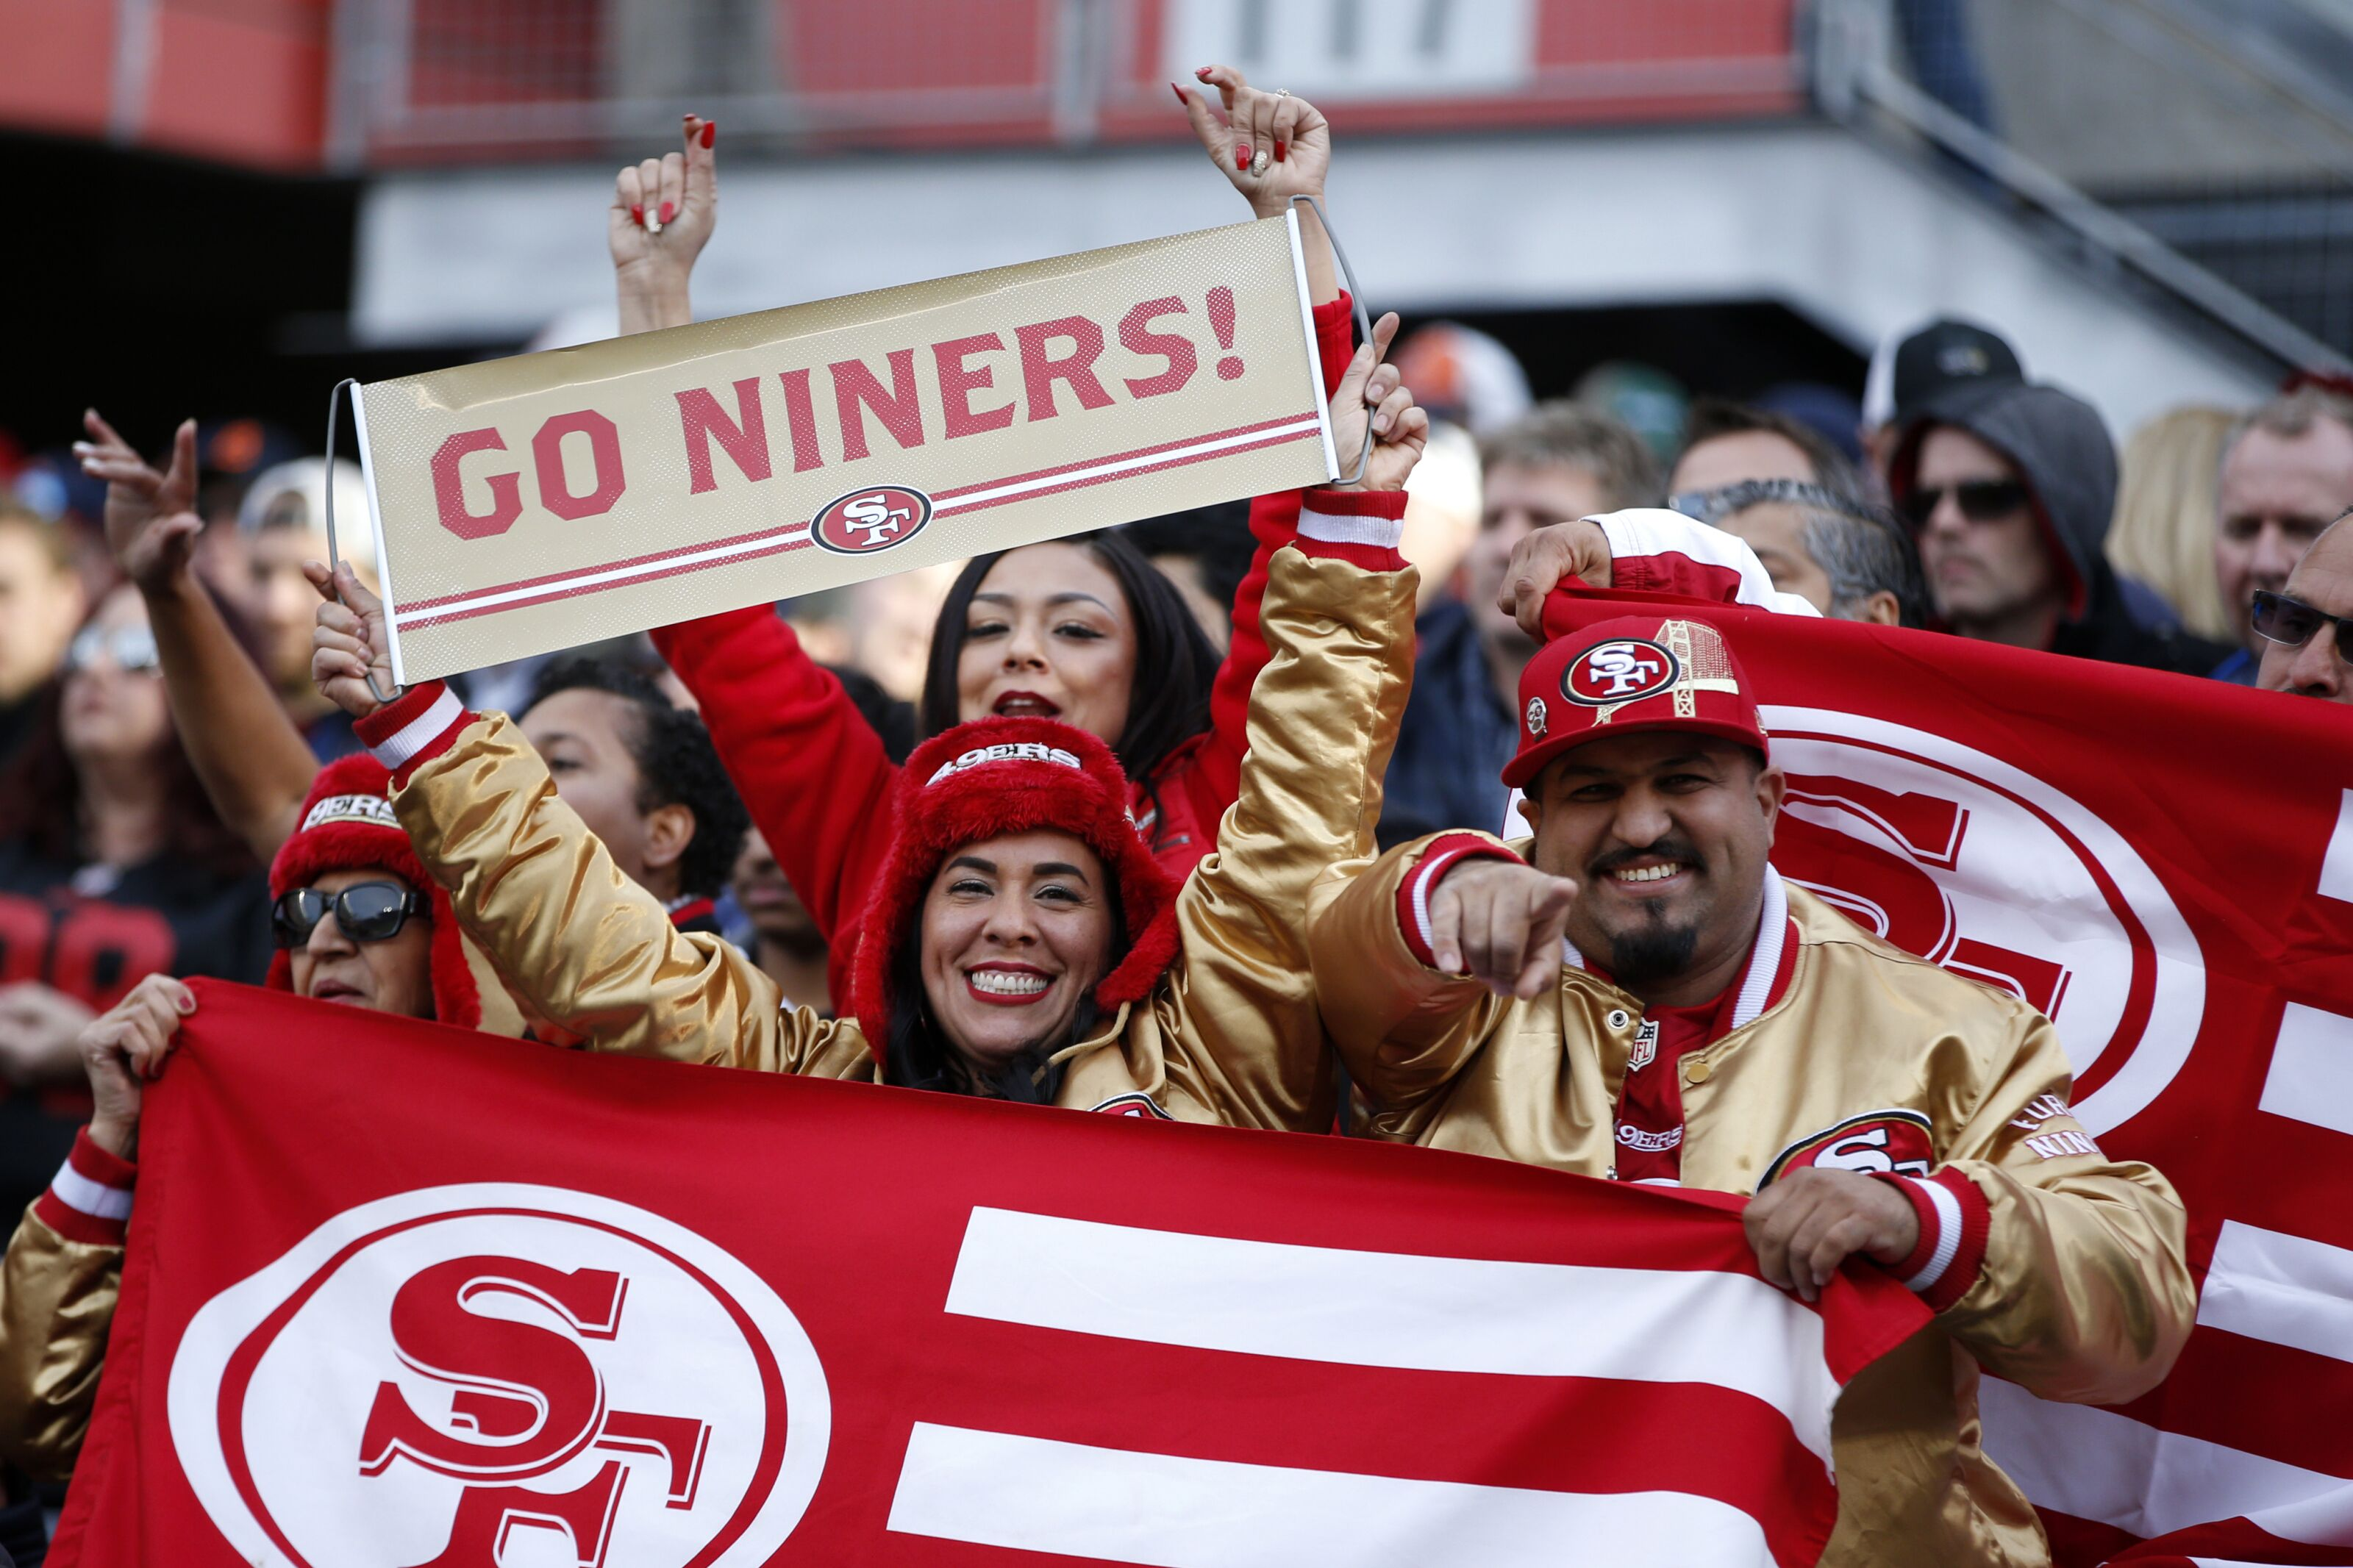 49ers vs. Redskins: 2019 Washington takeover, tailgate info & event schedule